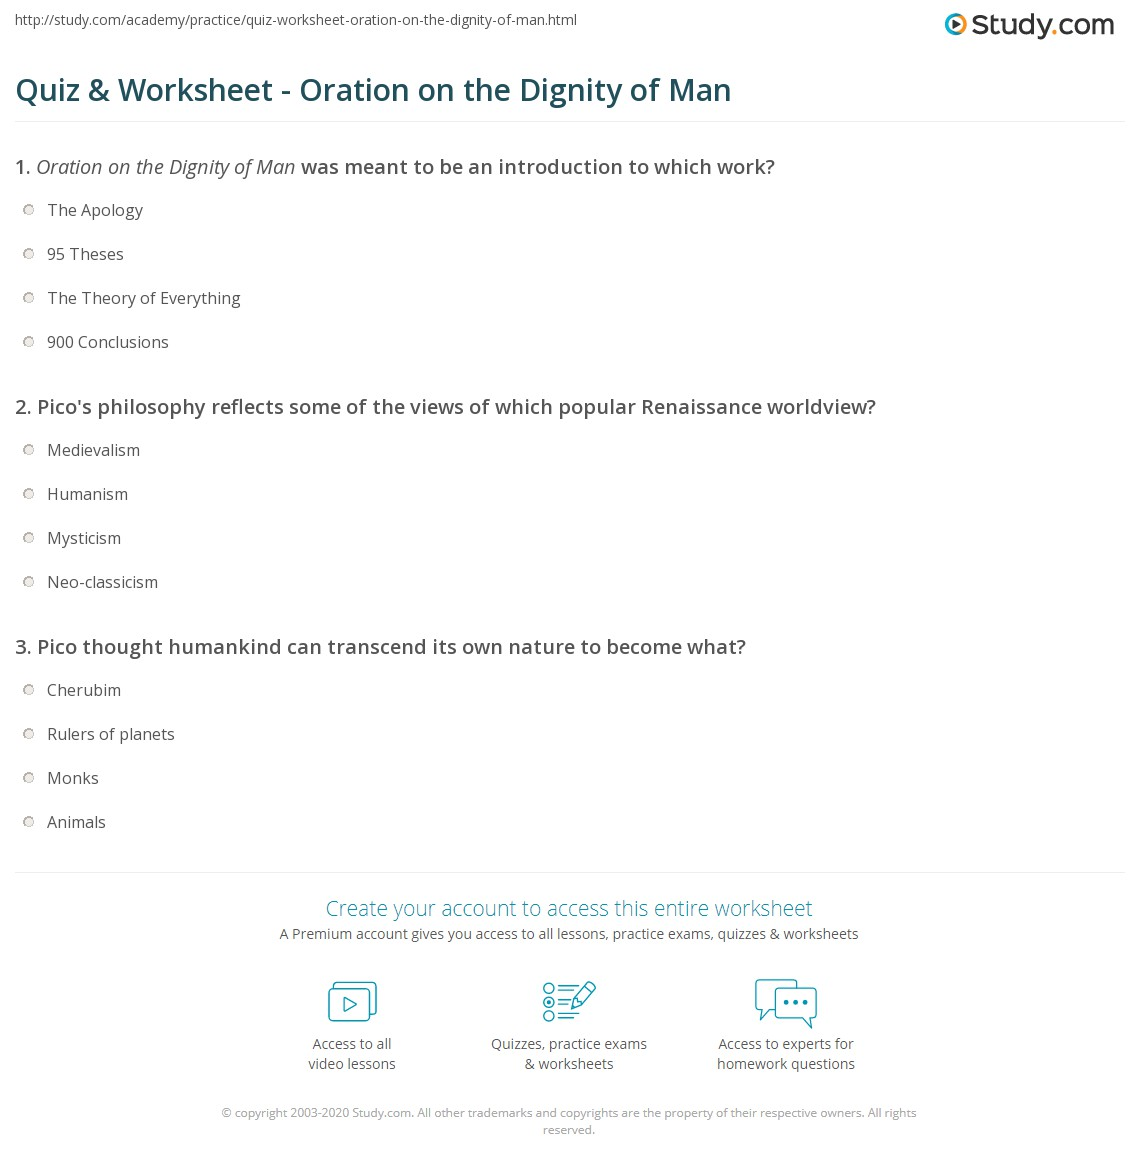 quiz worksheet oration on the dignity of man. Black Bedroom Furniture Sets. Home Design Ideas